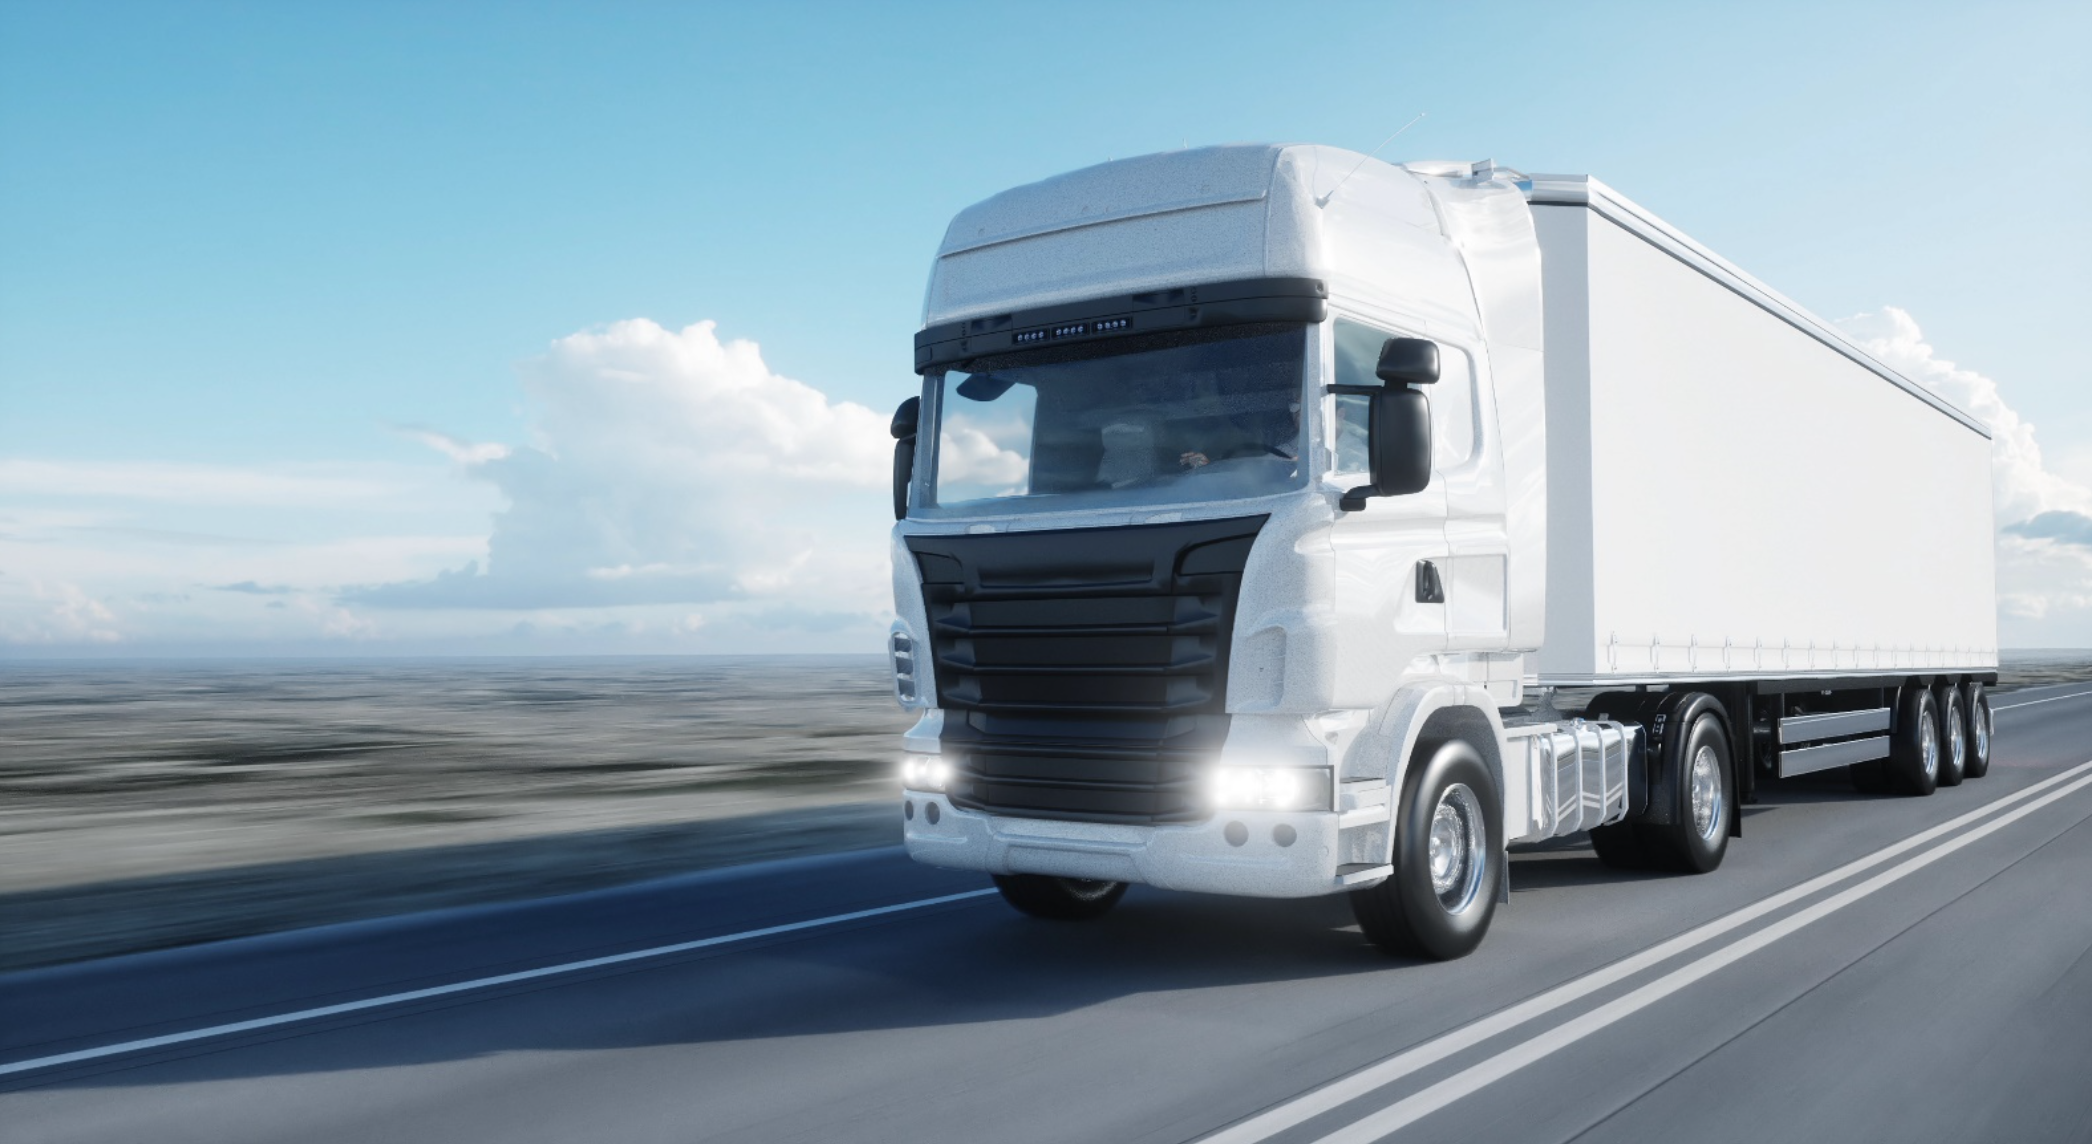 What is the most effective way to save fuel consumption, while also protecting goods in your trailers?